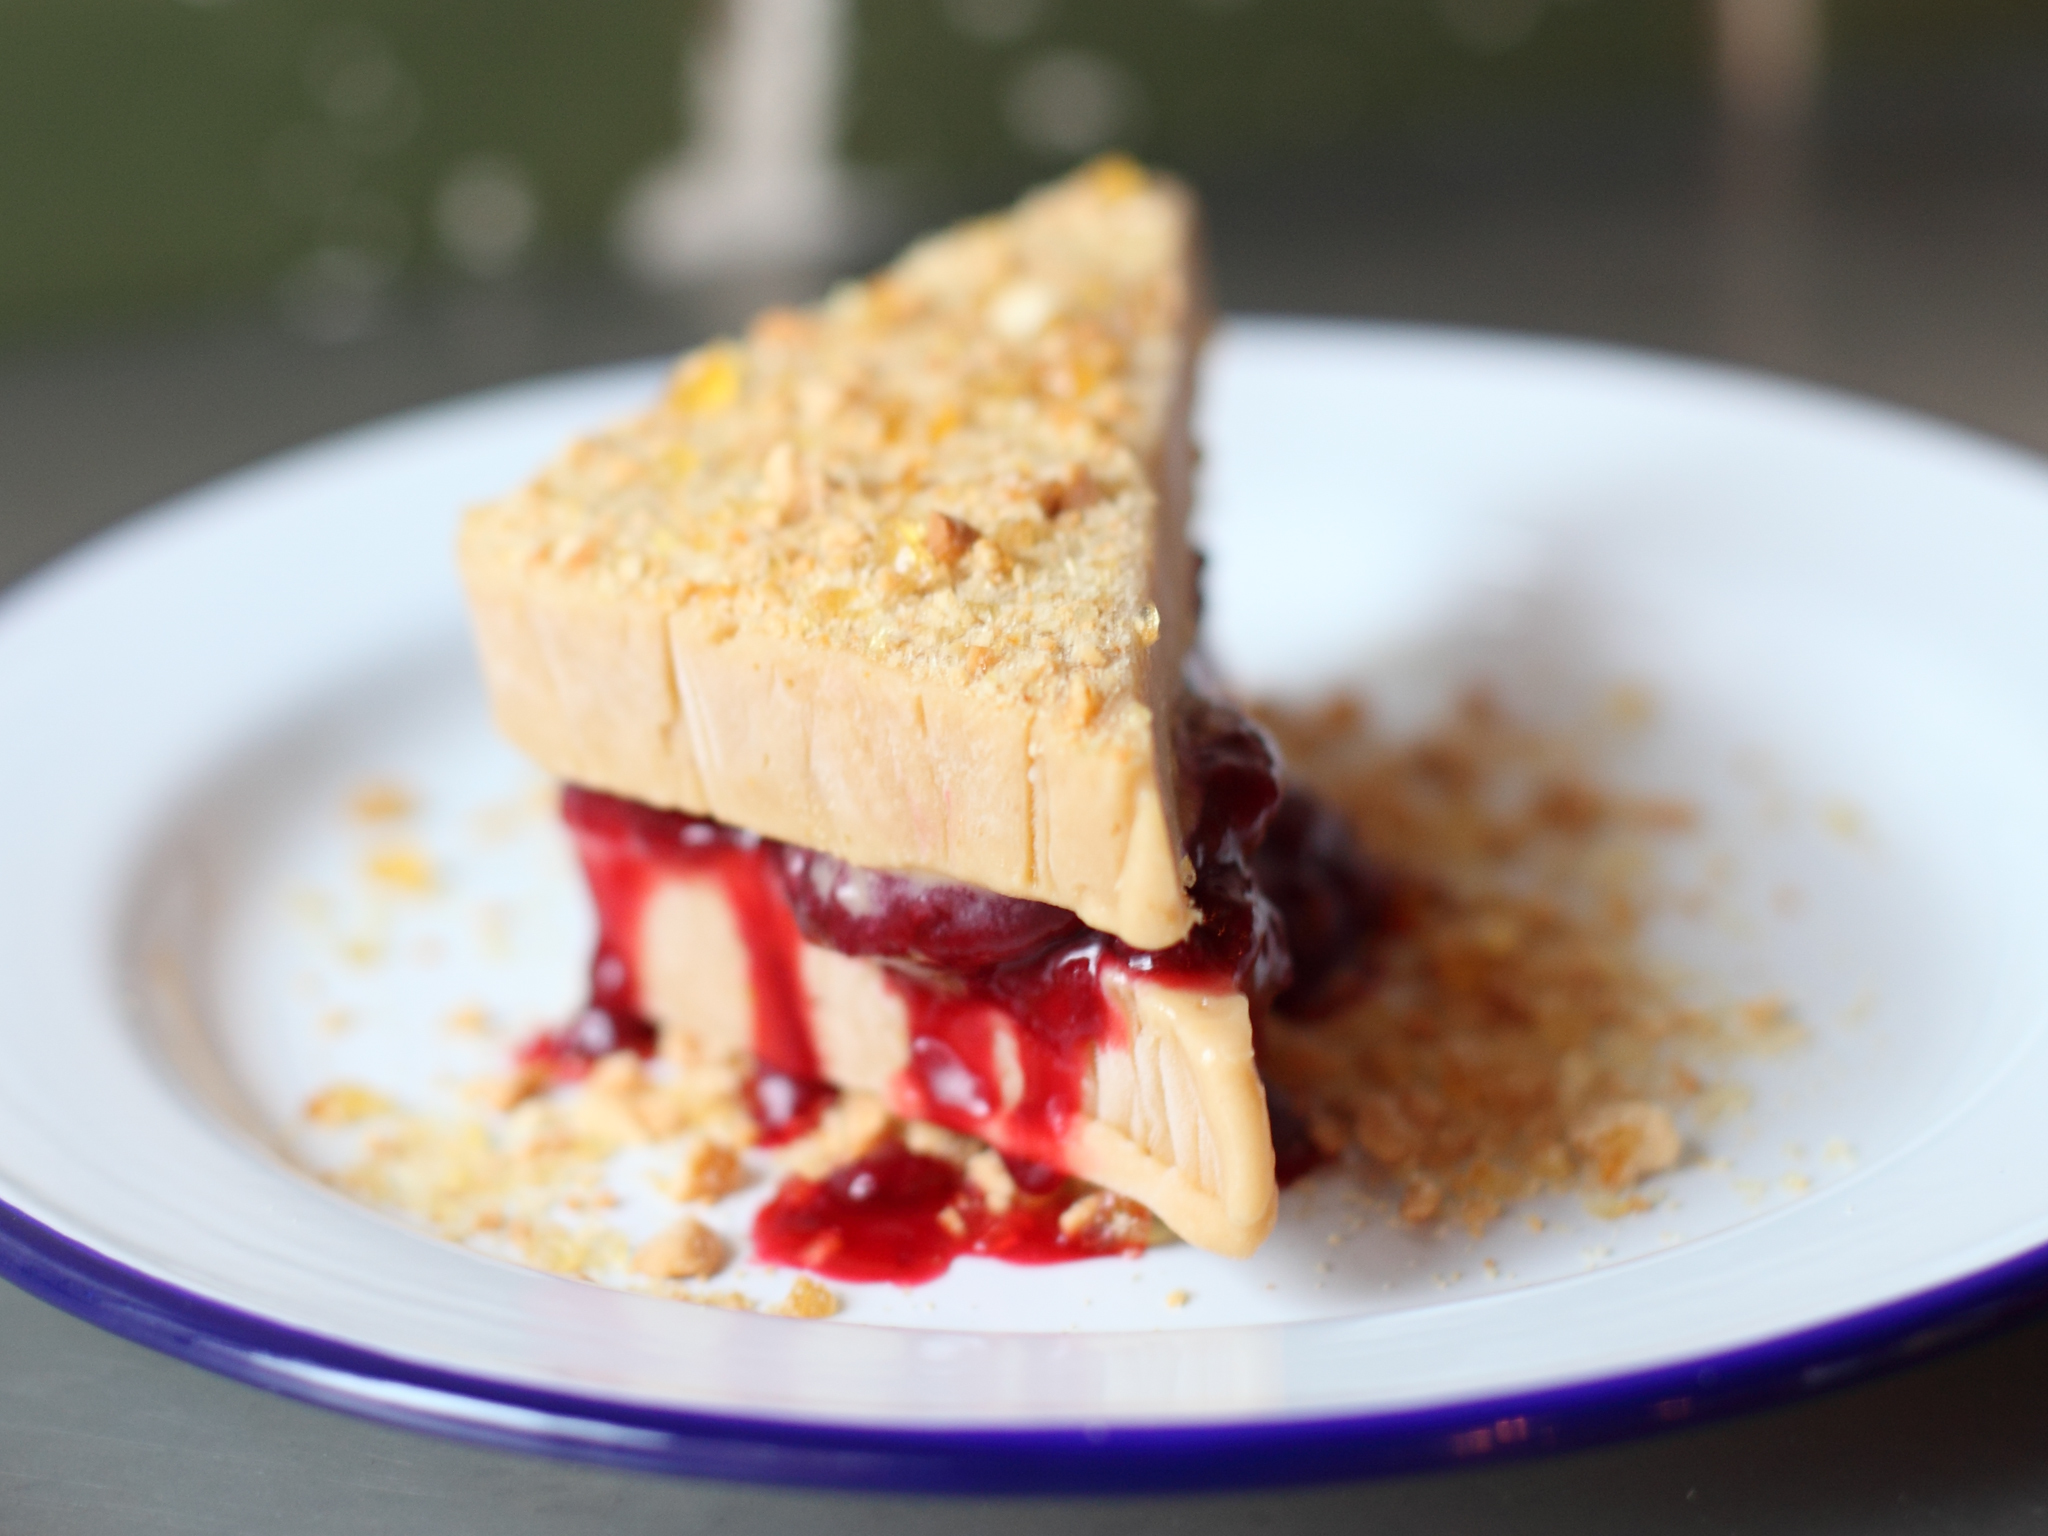 Peanut butter and jelly ice cream sandwich at Spuntino